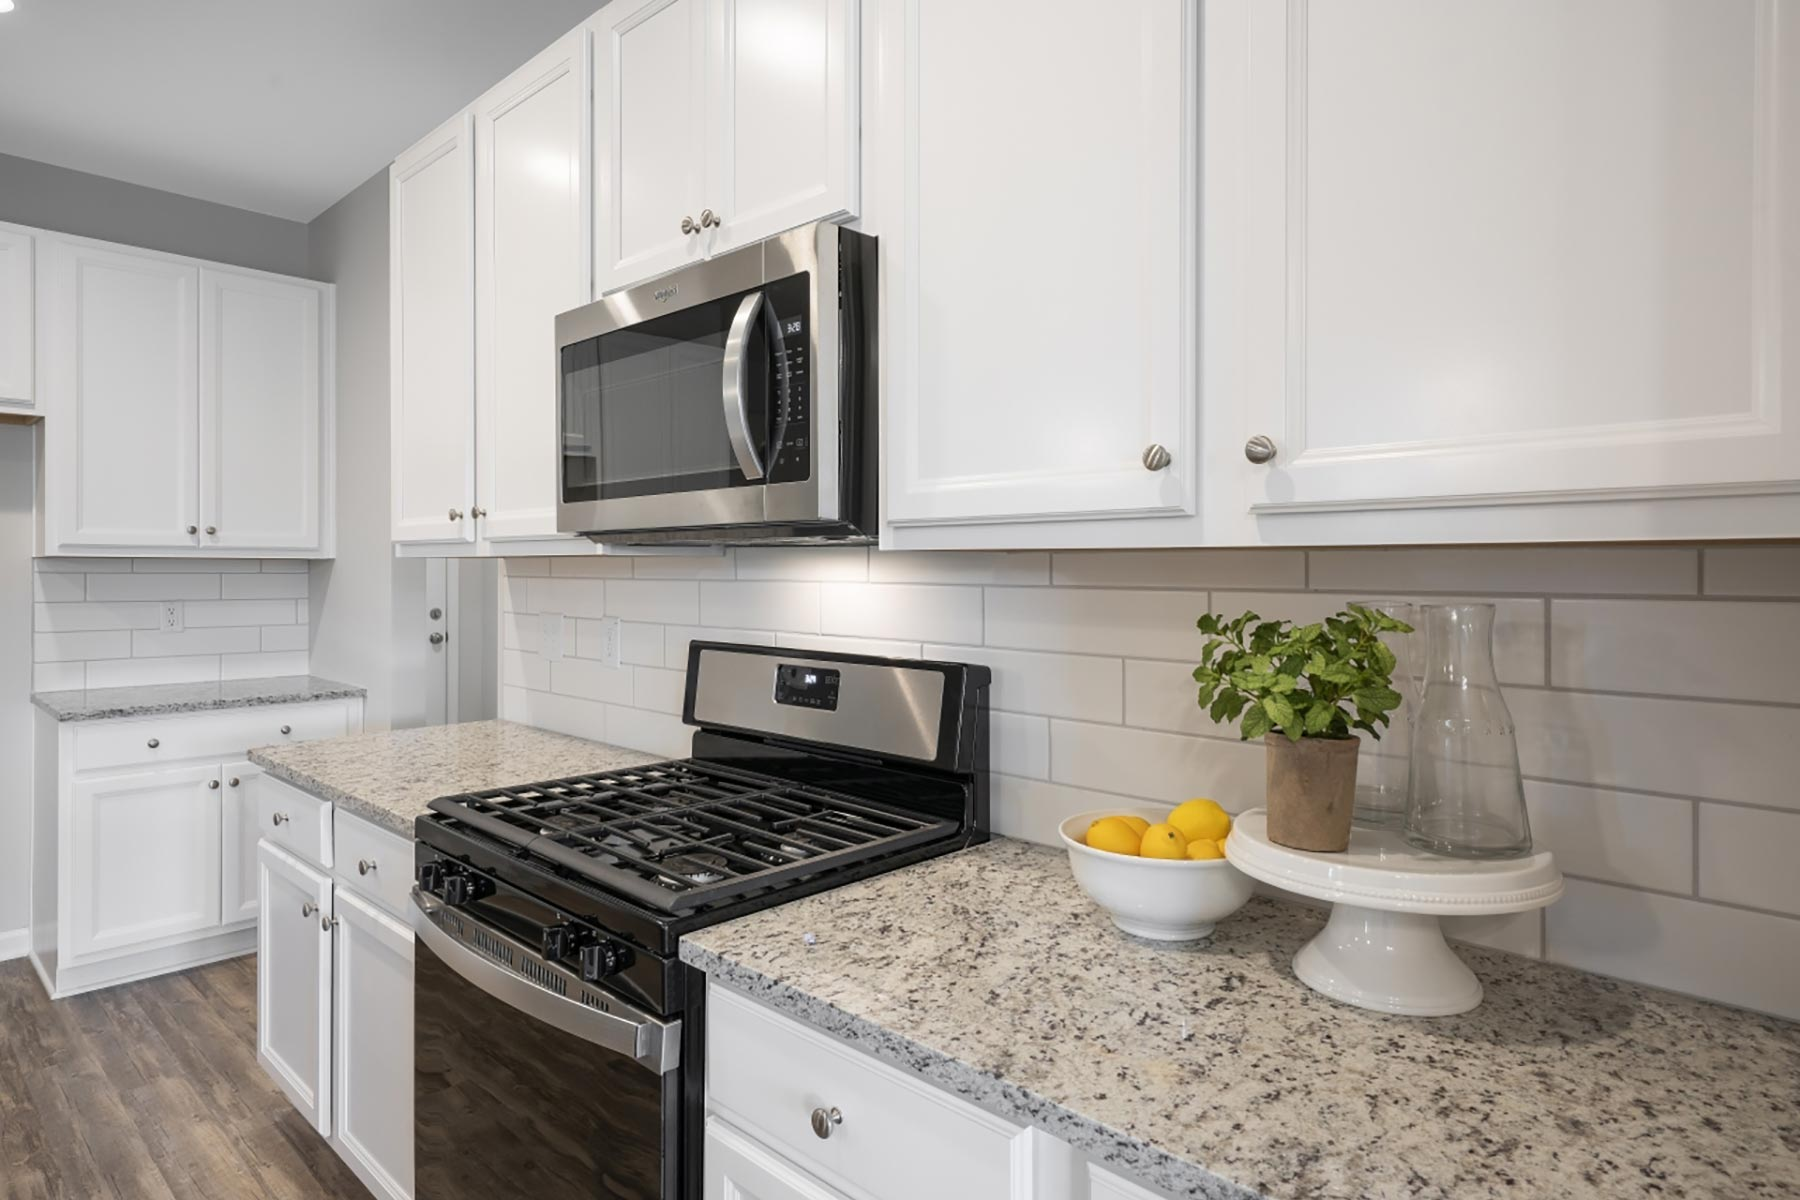 Evelyn Plan rdu-bedford-evelyn-kitchen at Wendell Falls in Wendell North Carolina by Mattamy Homes